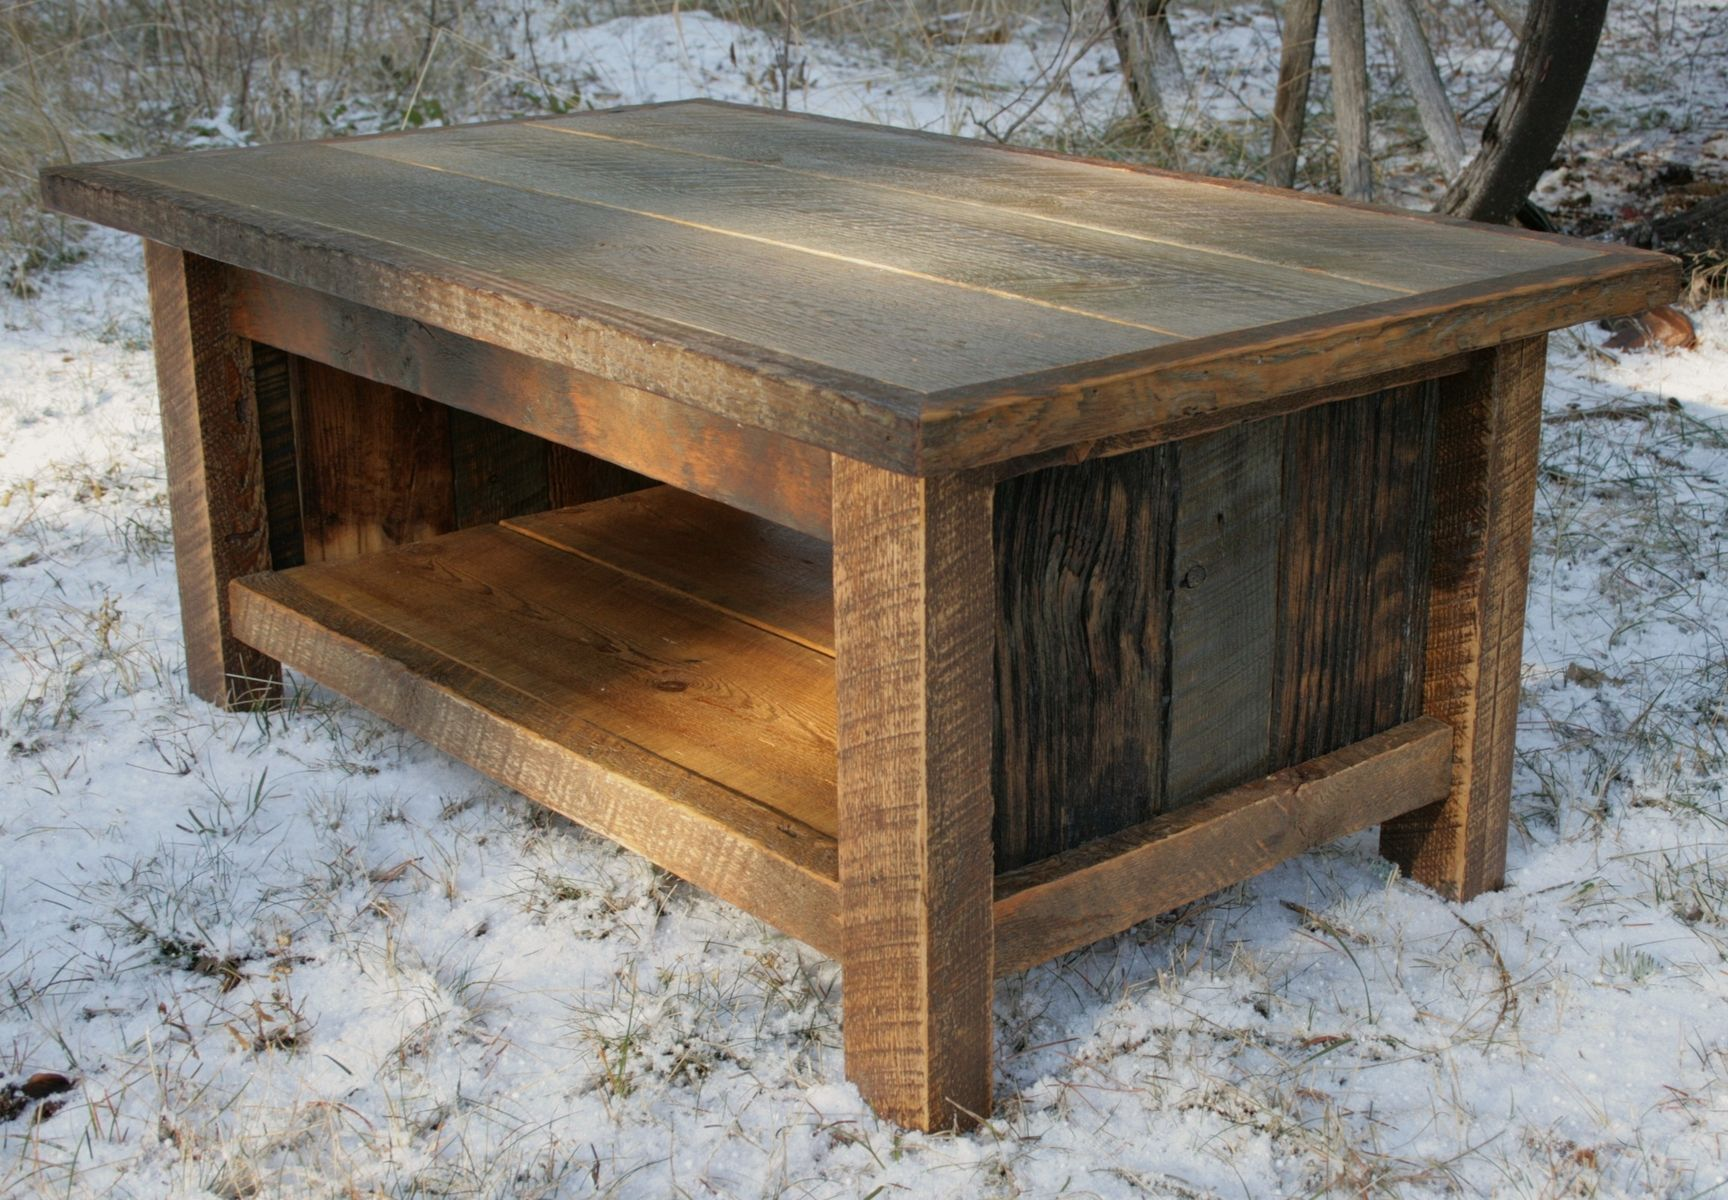 Hand crafted rustic reclaimed coffee table by echo peak for Reclaimed wood table designs